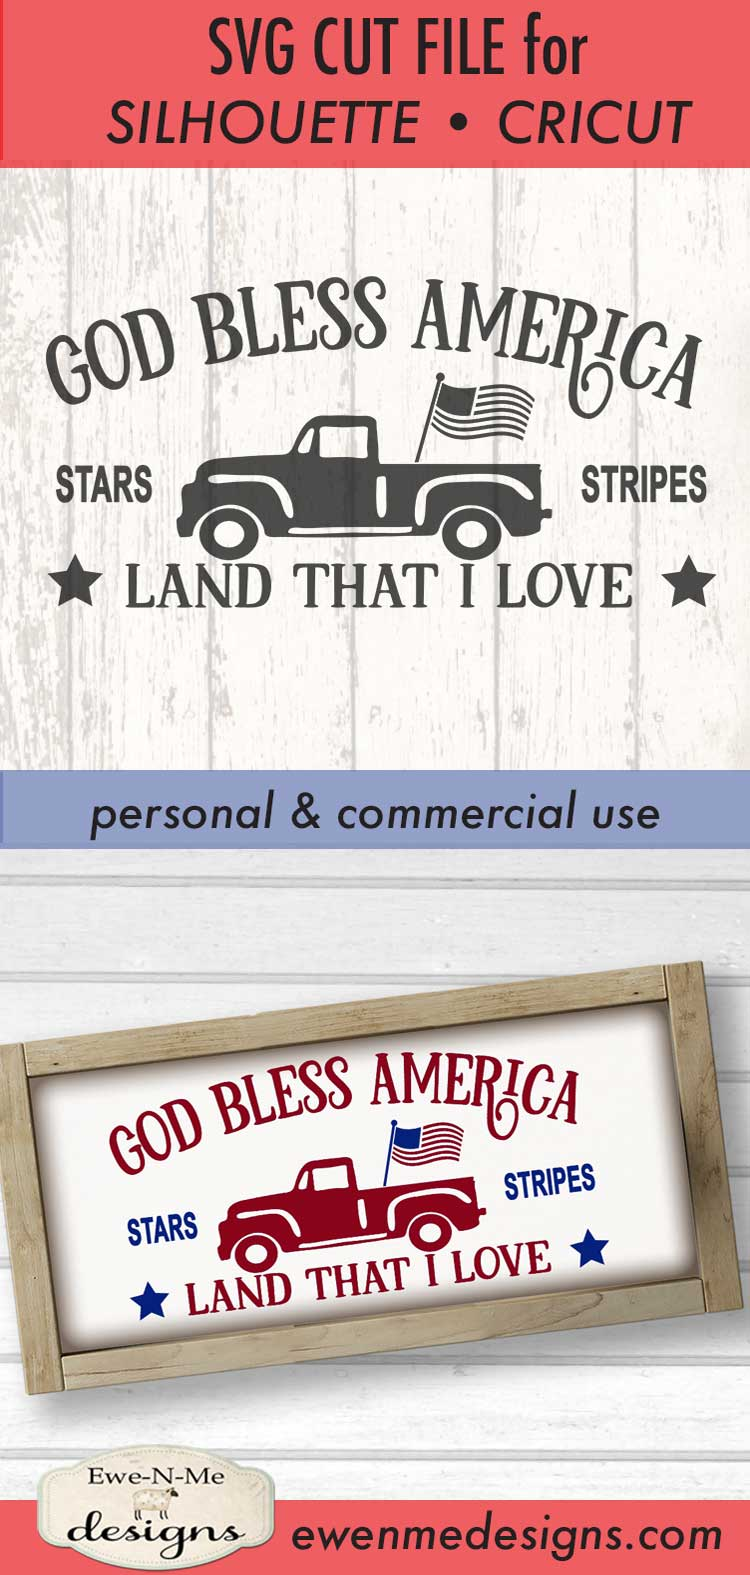 God Bless America Vintage Truck SVG DXF Files example image 3